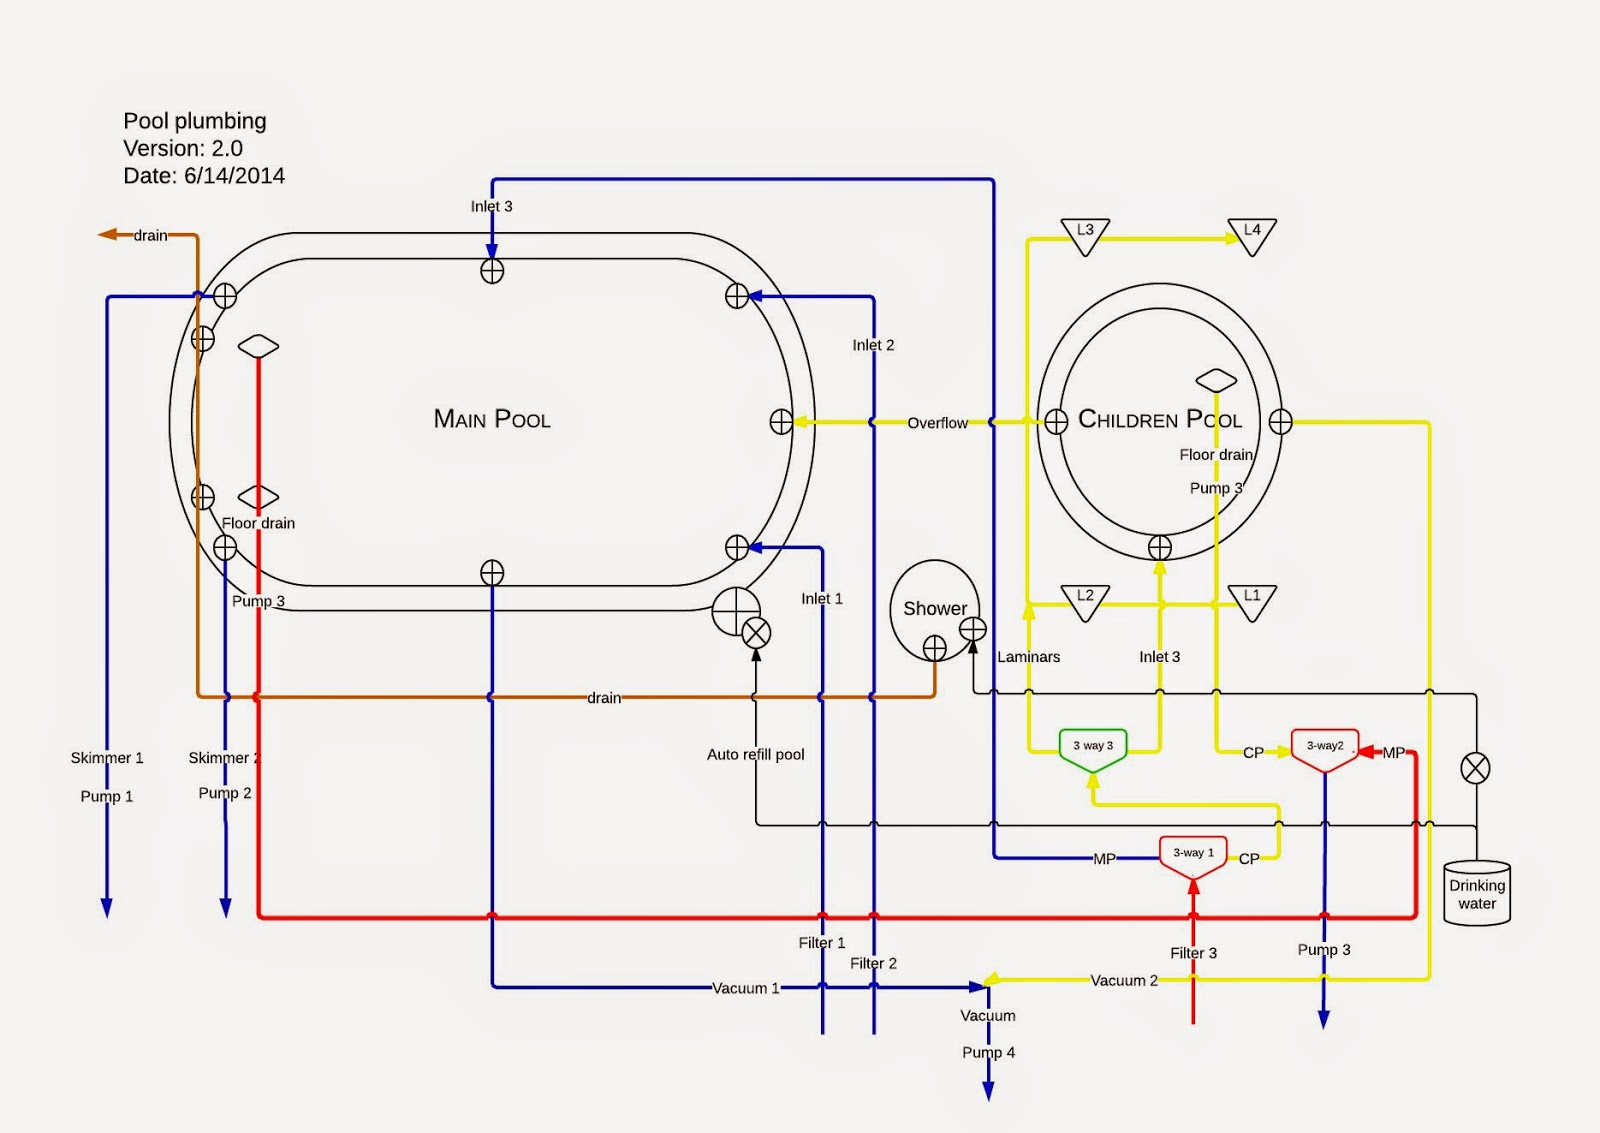 hight resolution of images of plumbing diagram for spa pool